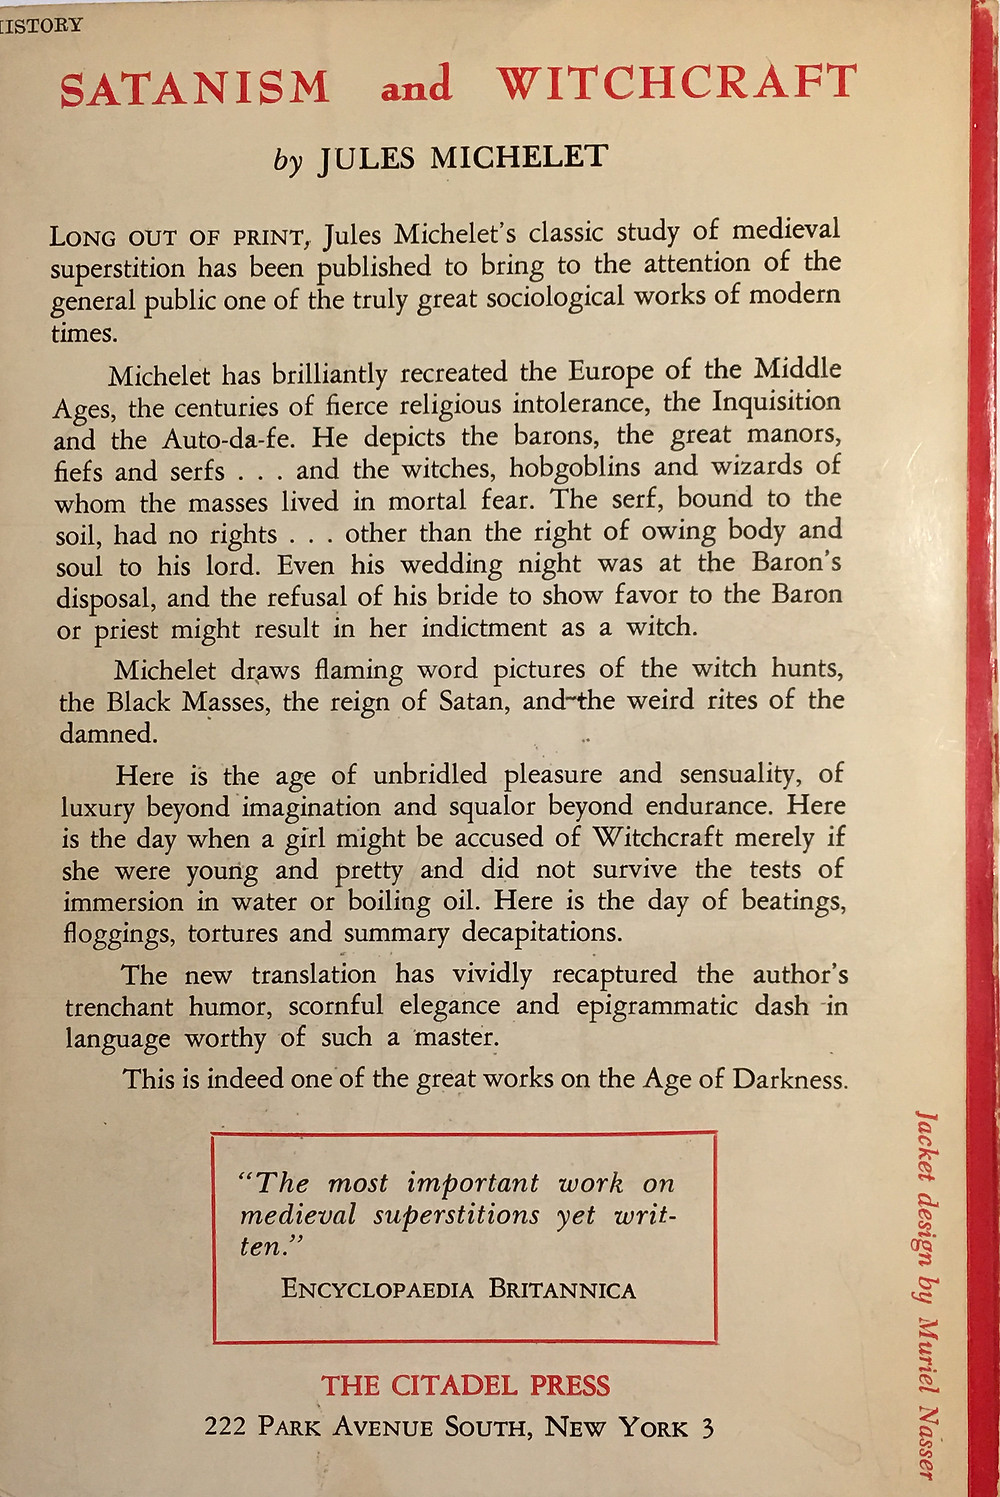 Back cover boiler plate copy of 1963 edition Satanism and Witchcraft